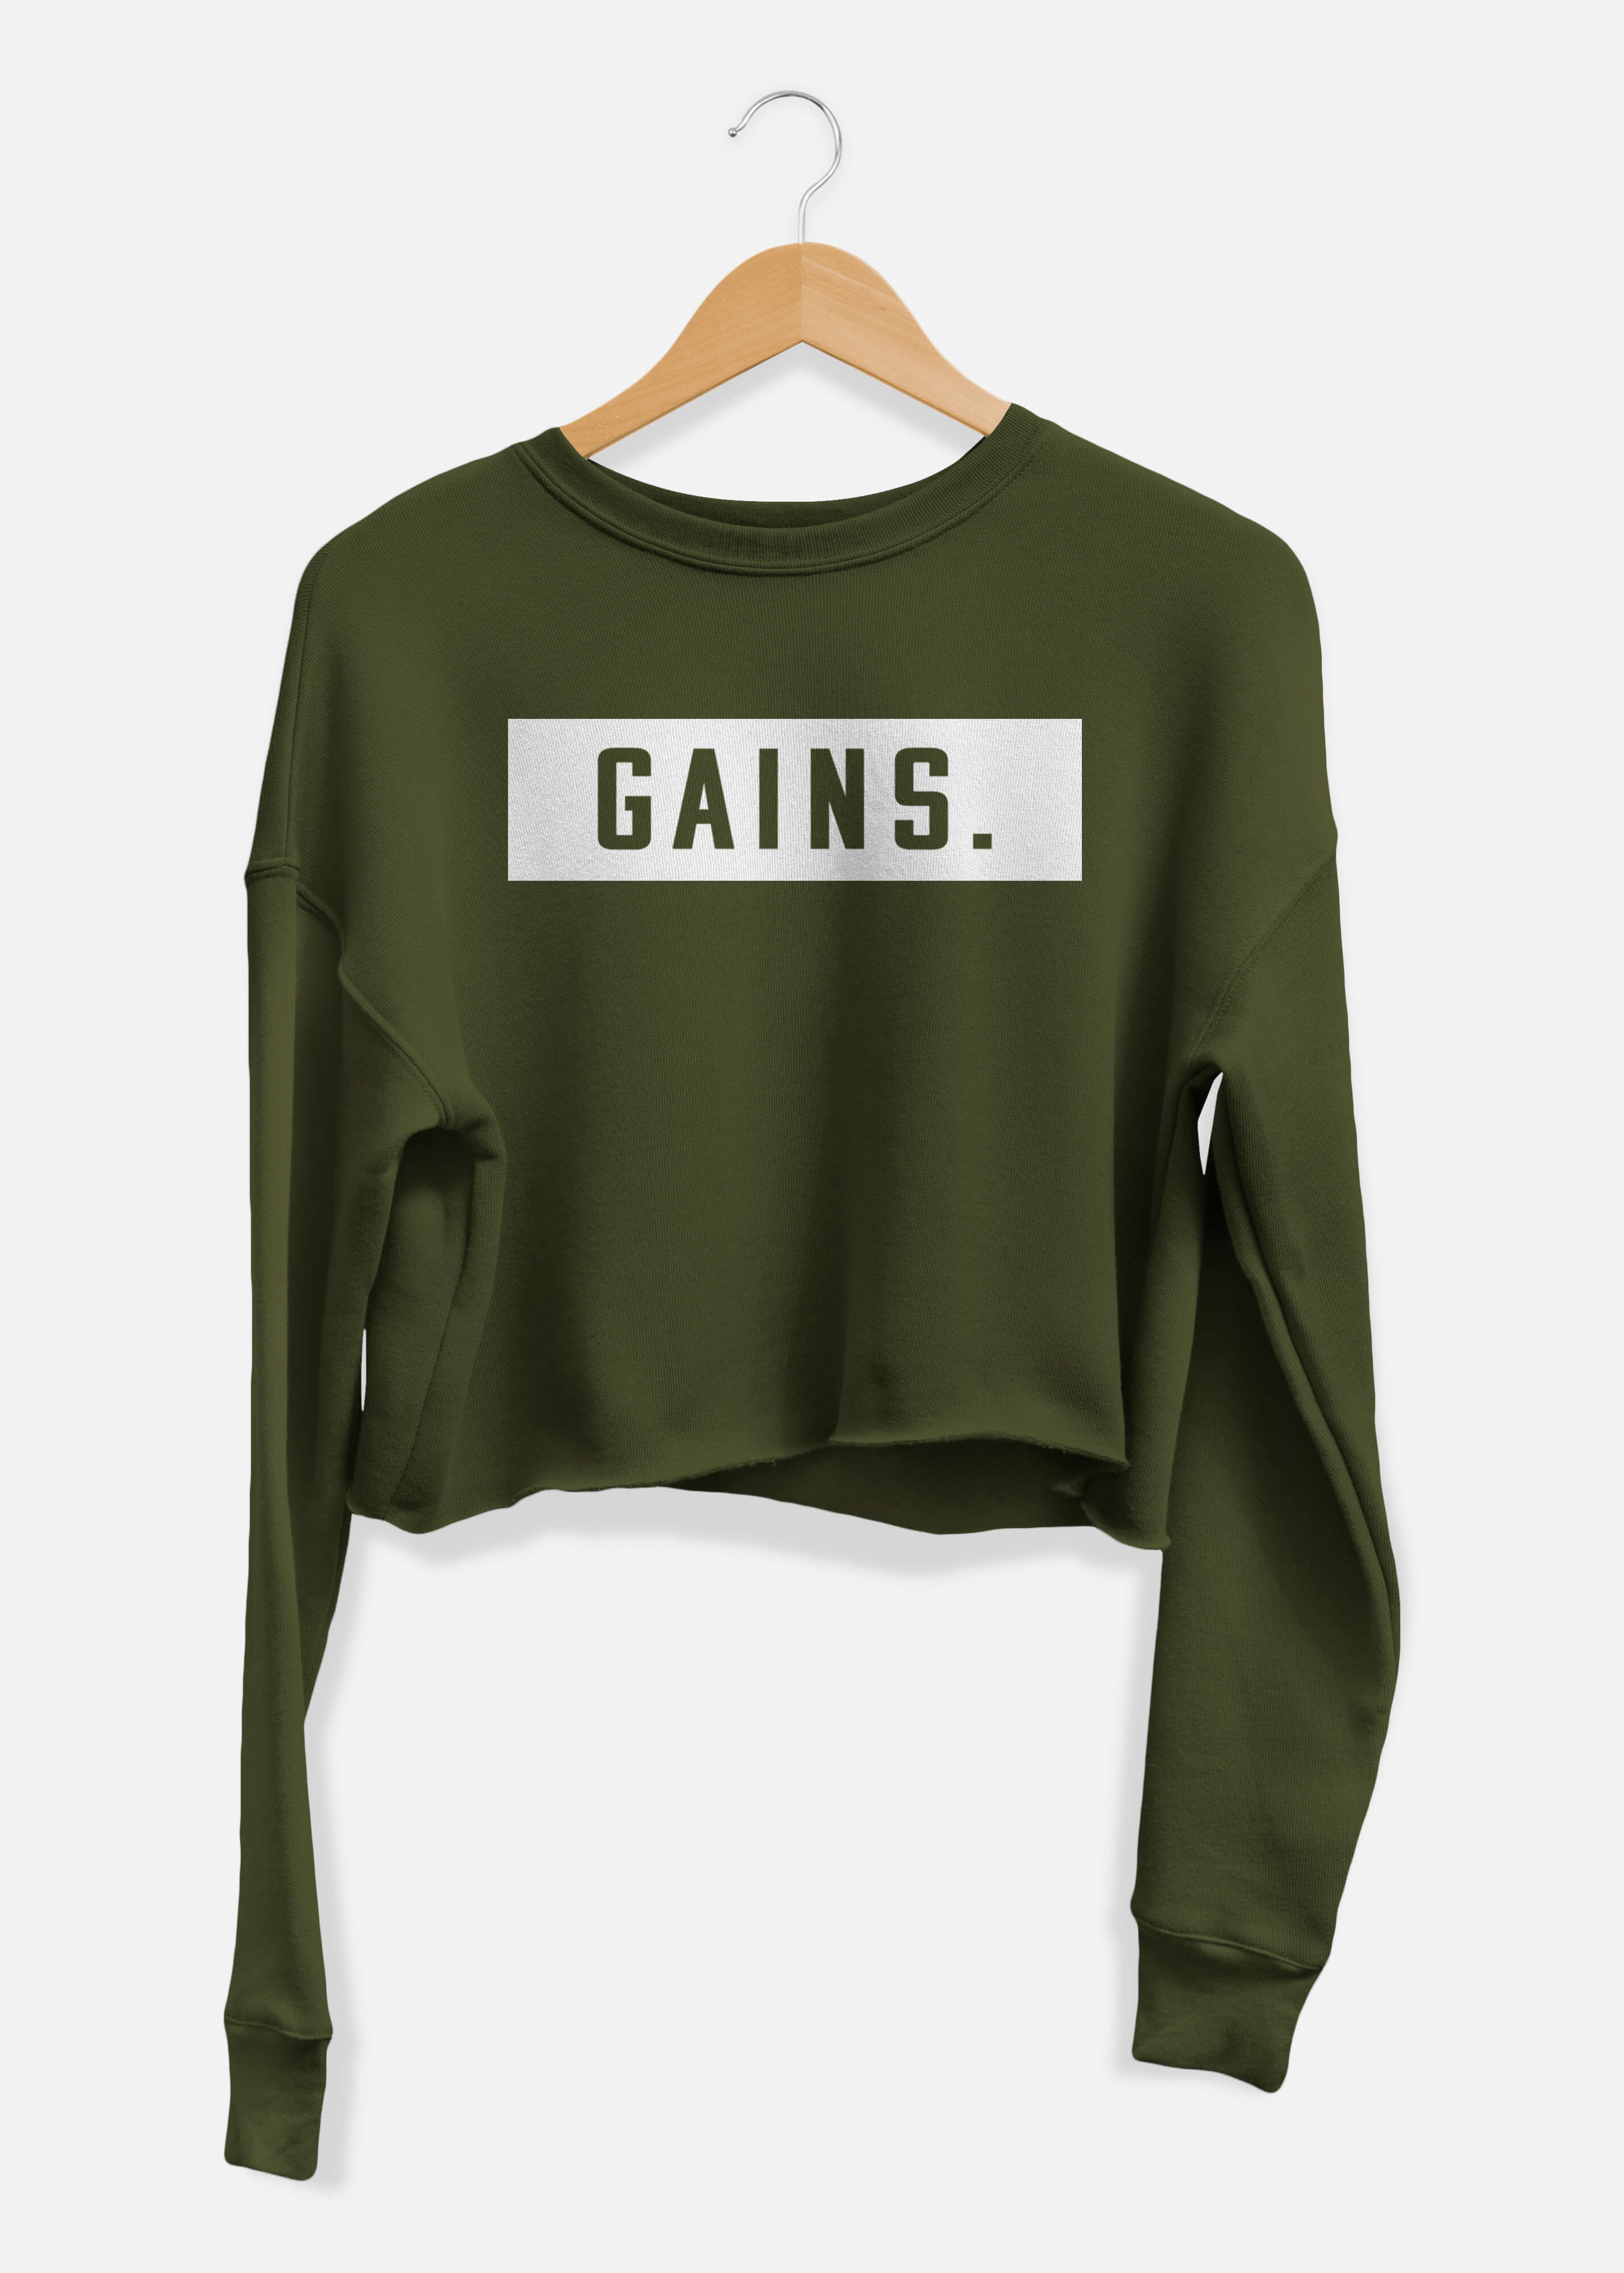 Gains Cropped Sweater